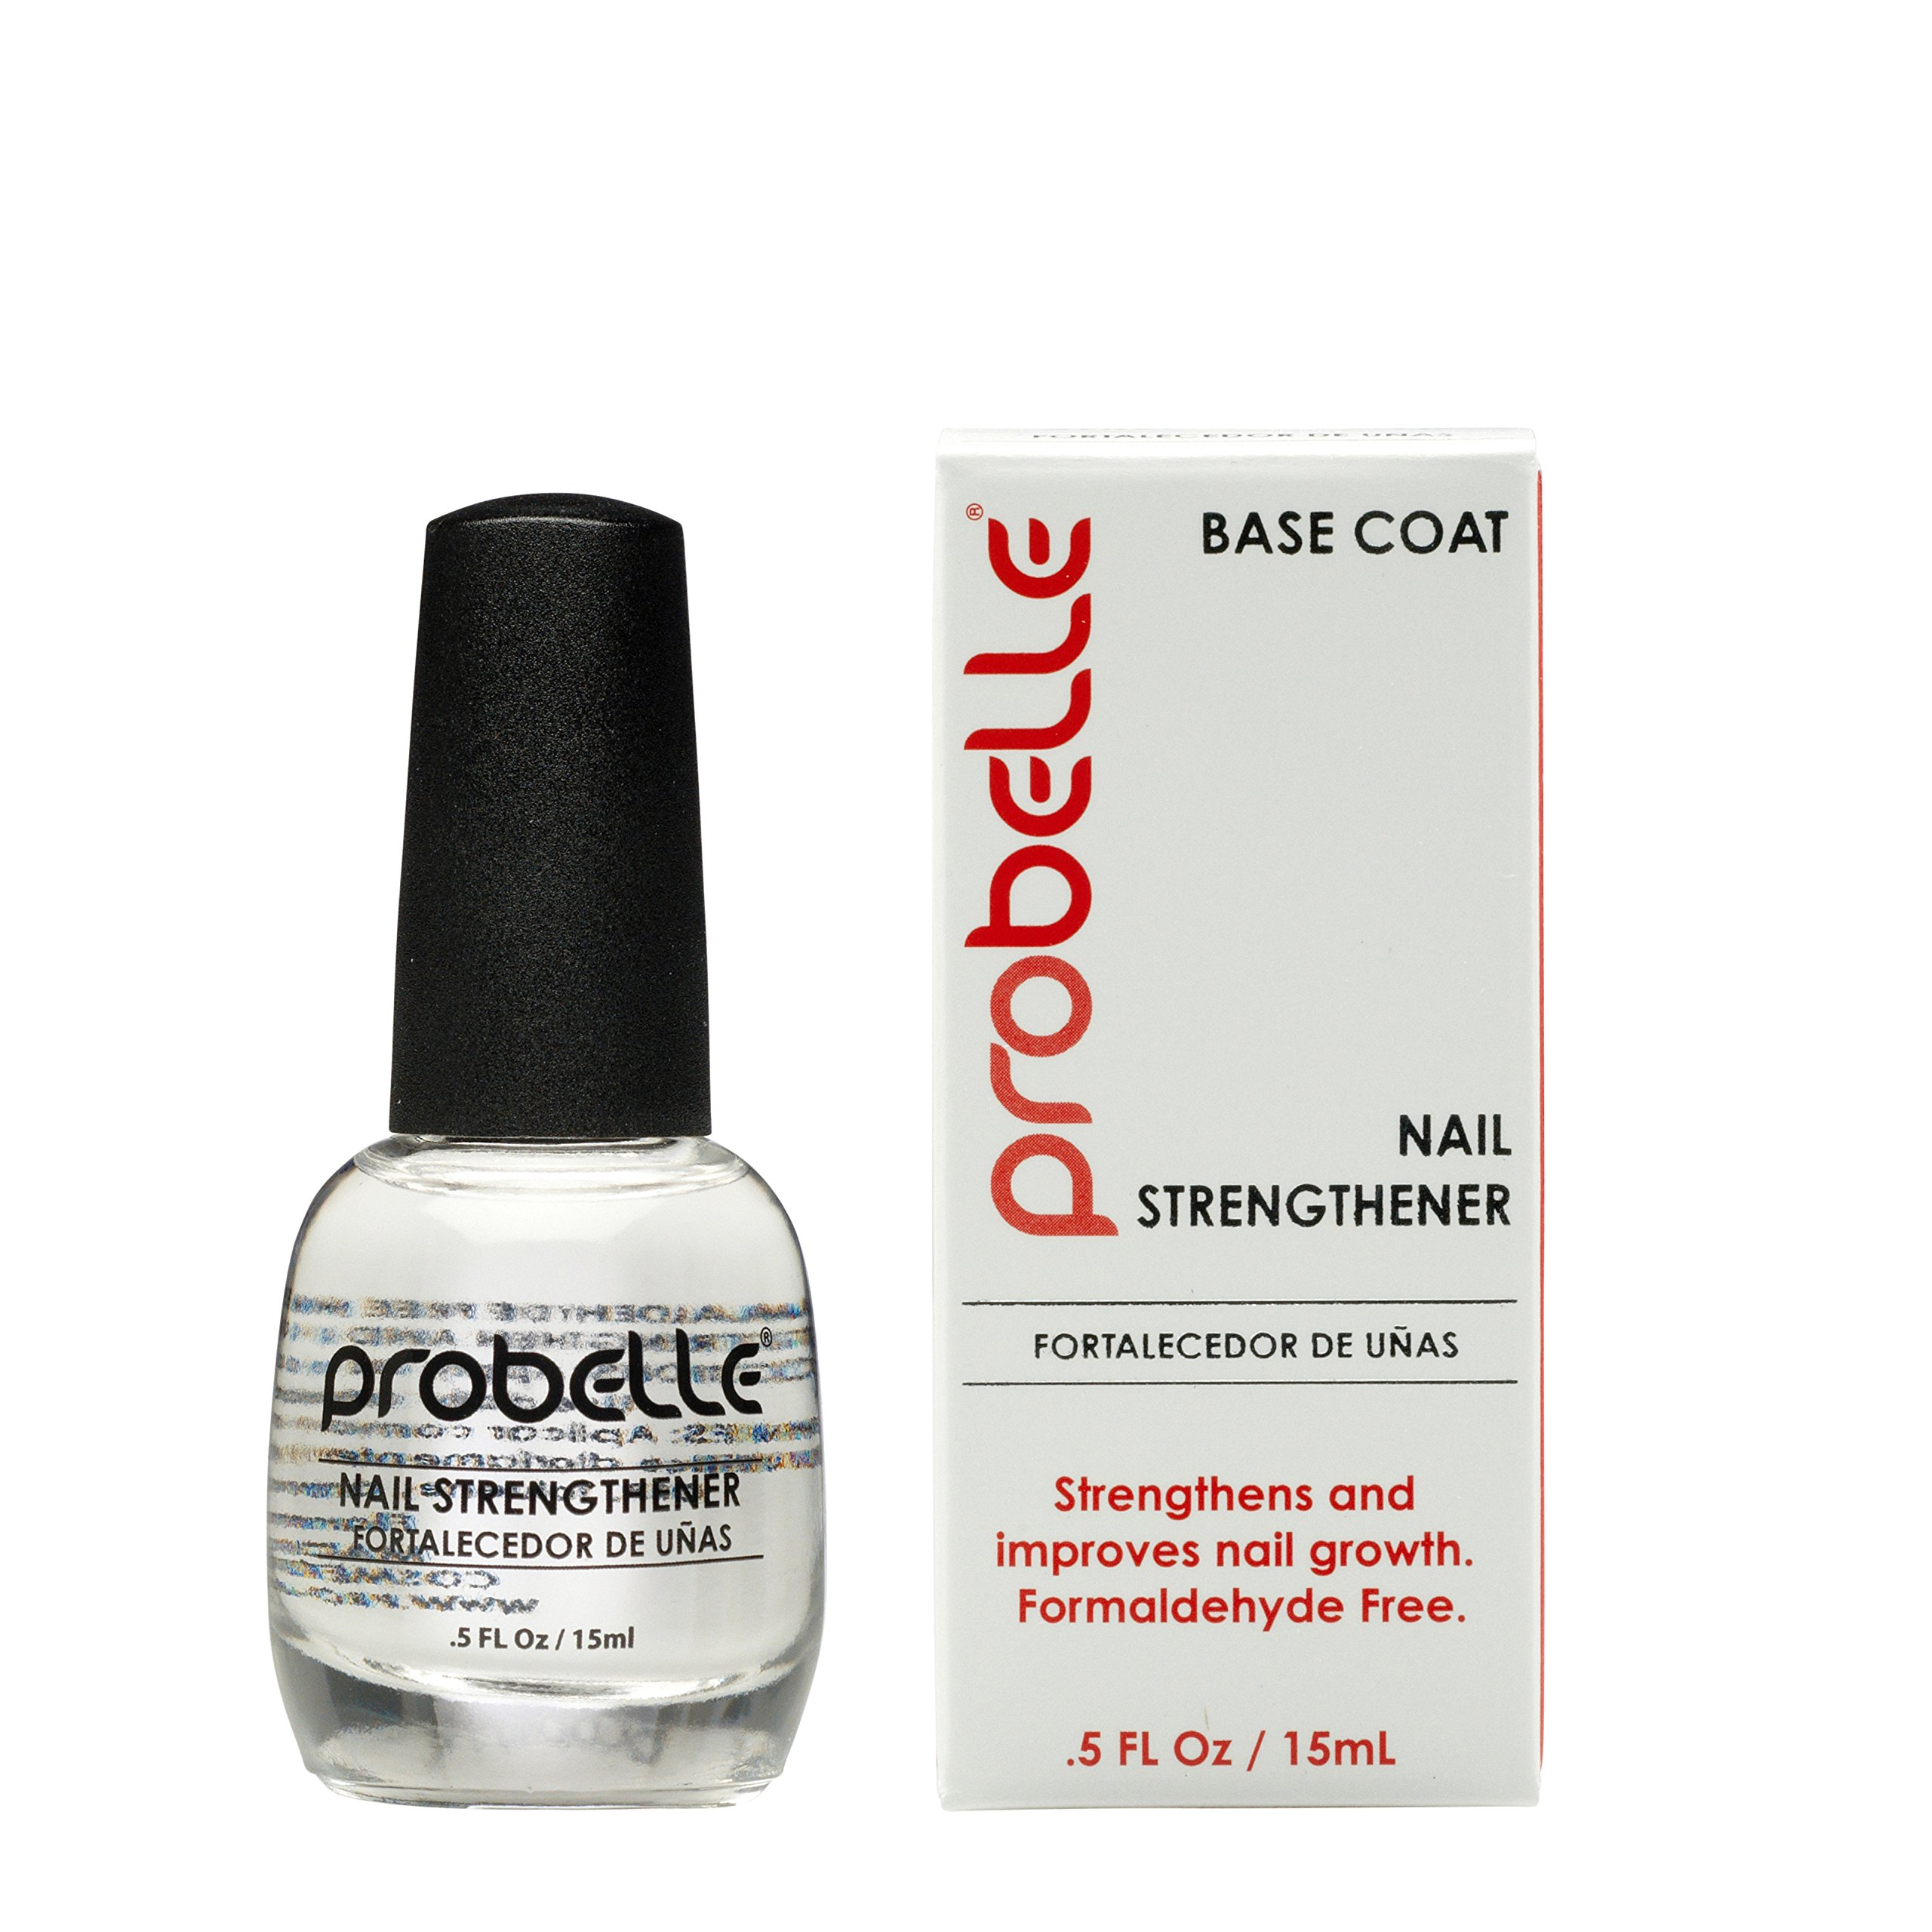 Probelle Nail Strengthener, Strengthens and Improves nail growth. Formaldehyde Free Formula, 0.5 oz